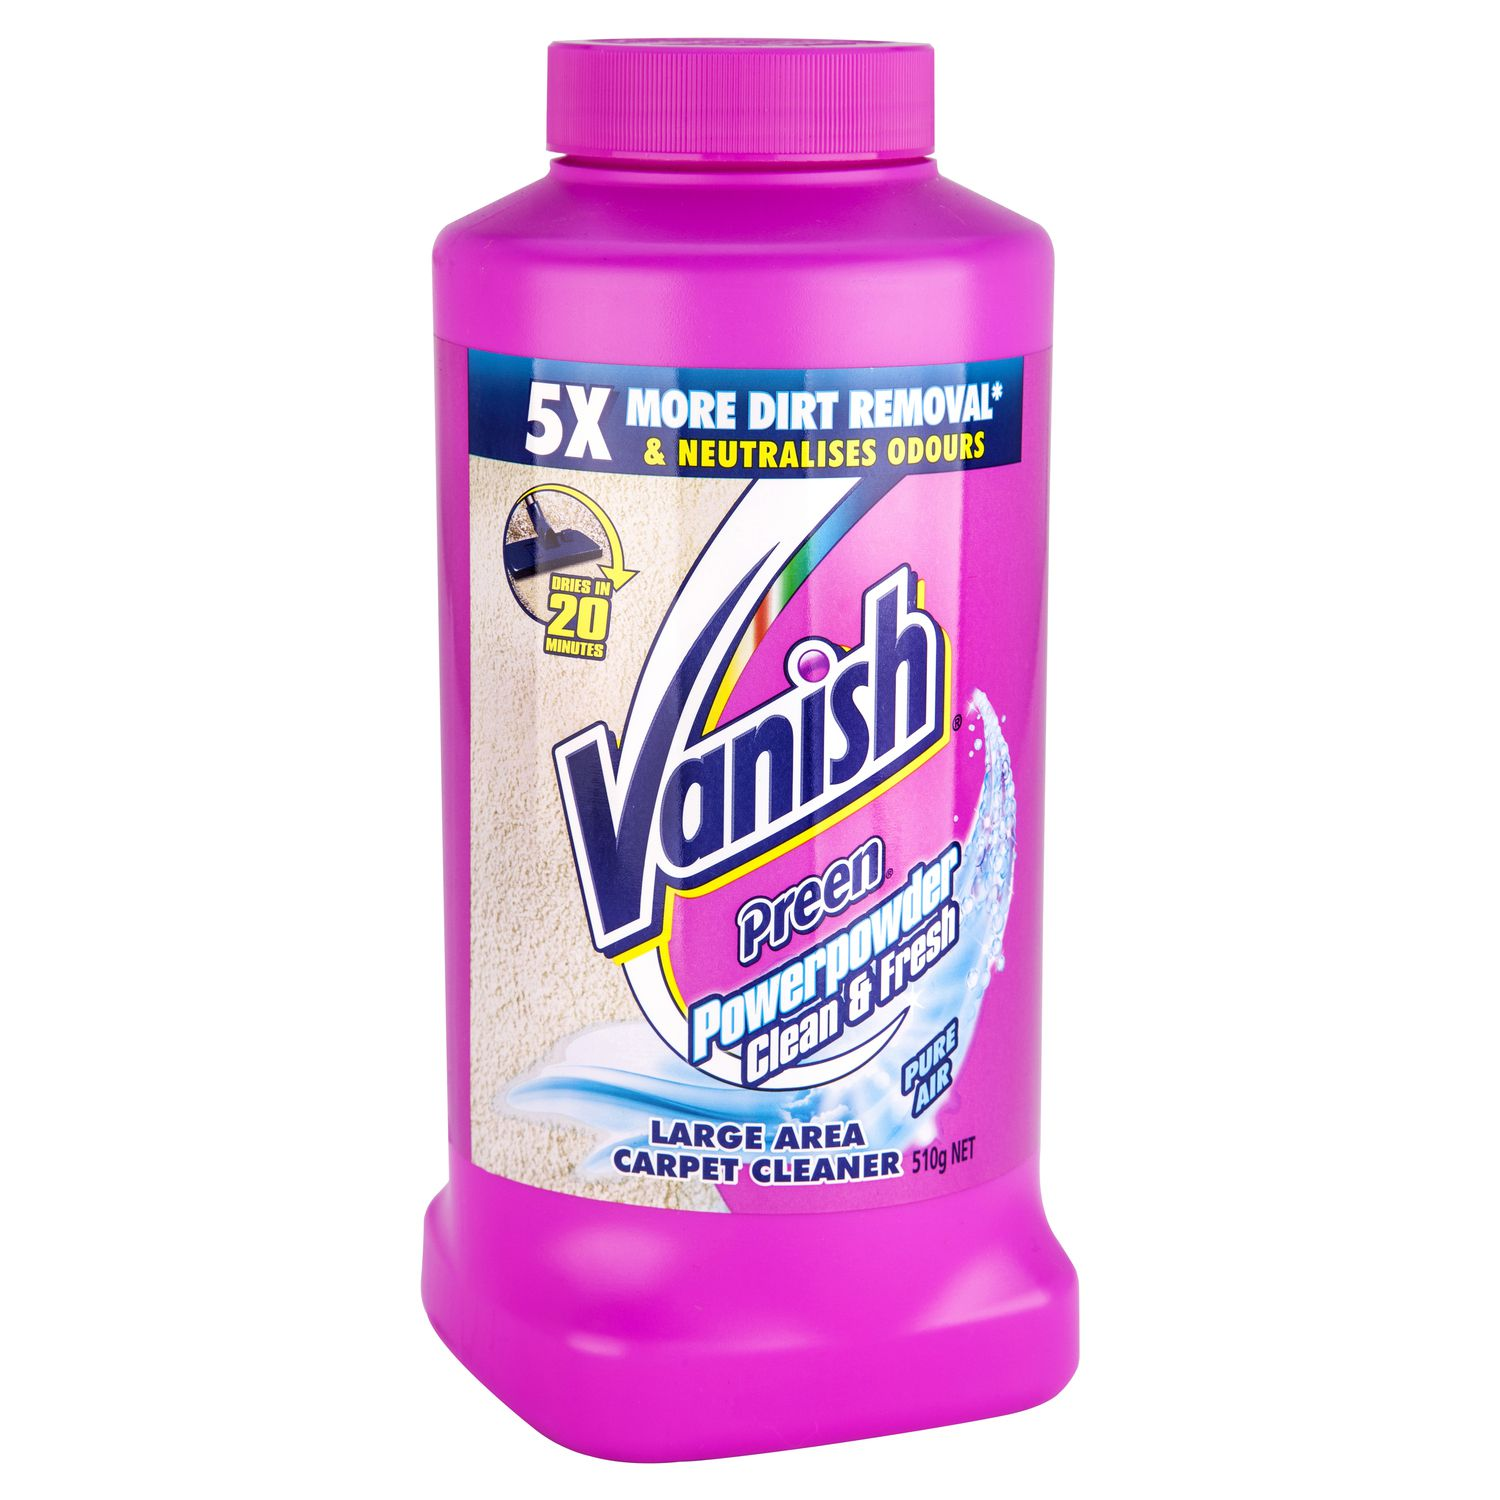 Vanish Carpet Cleaner Asda Review Home Co